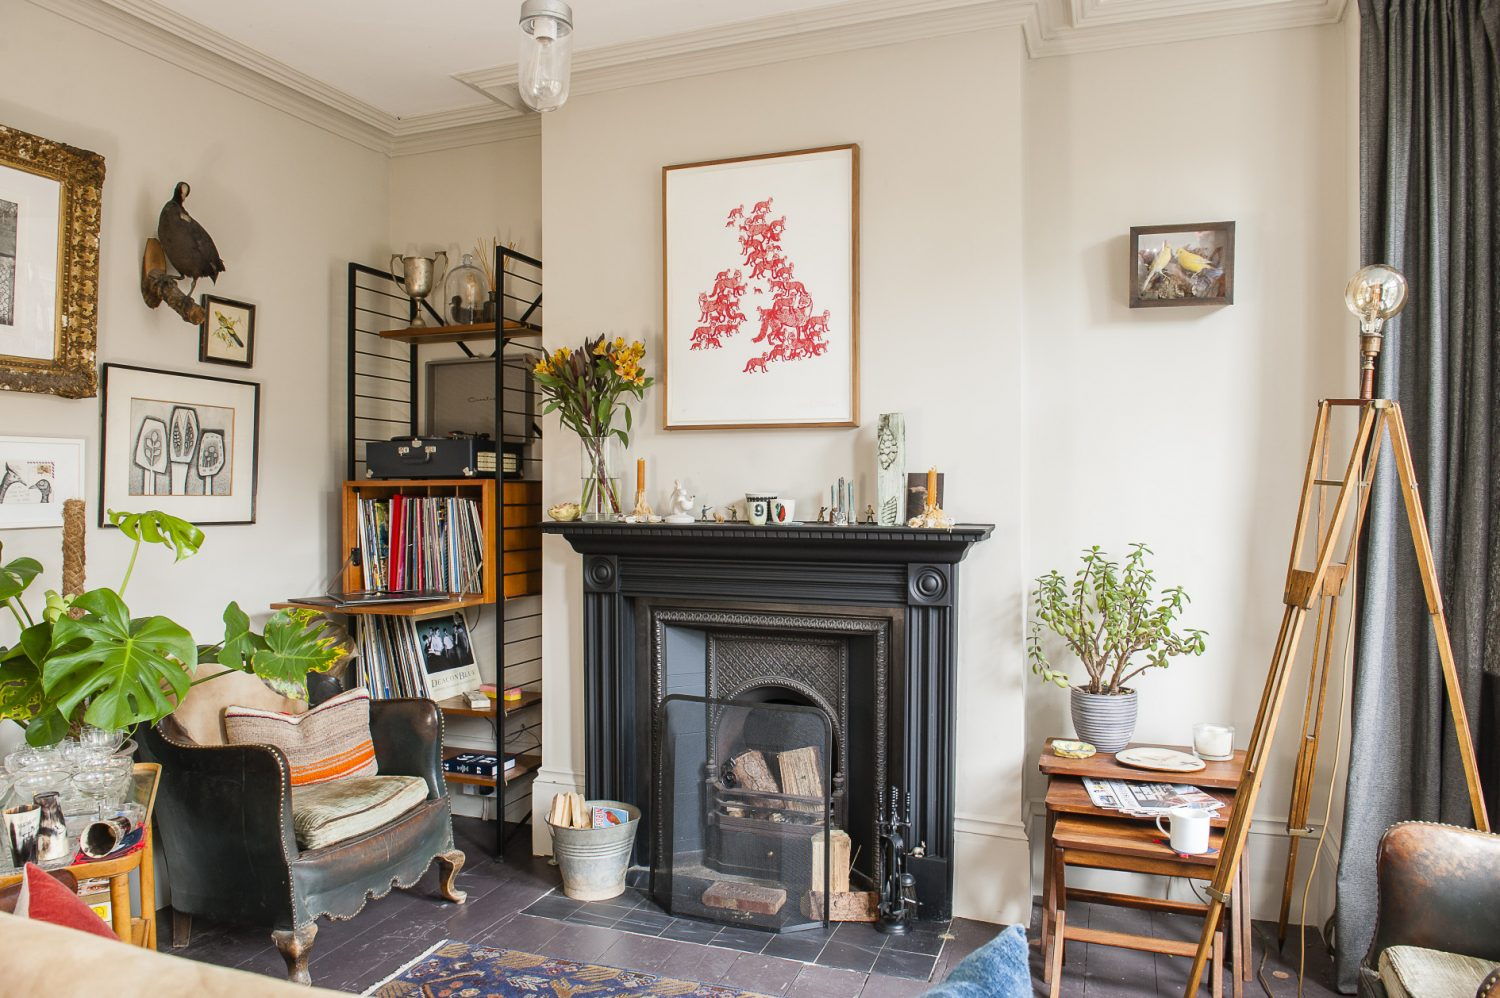 Above the fireplace in the living room hangs a UK map made out of foxes by artist Patrick Thomas. The ceramics on the mantelpiece are from The Clay Den in Hastings